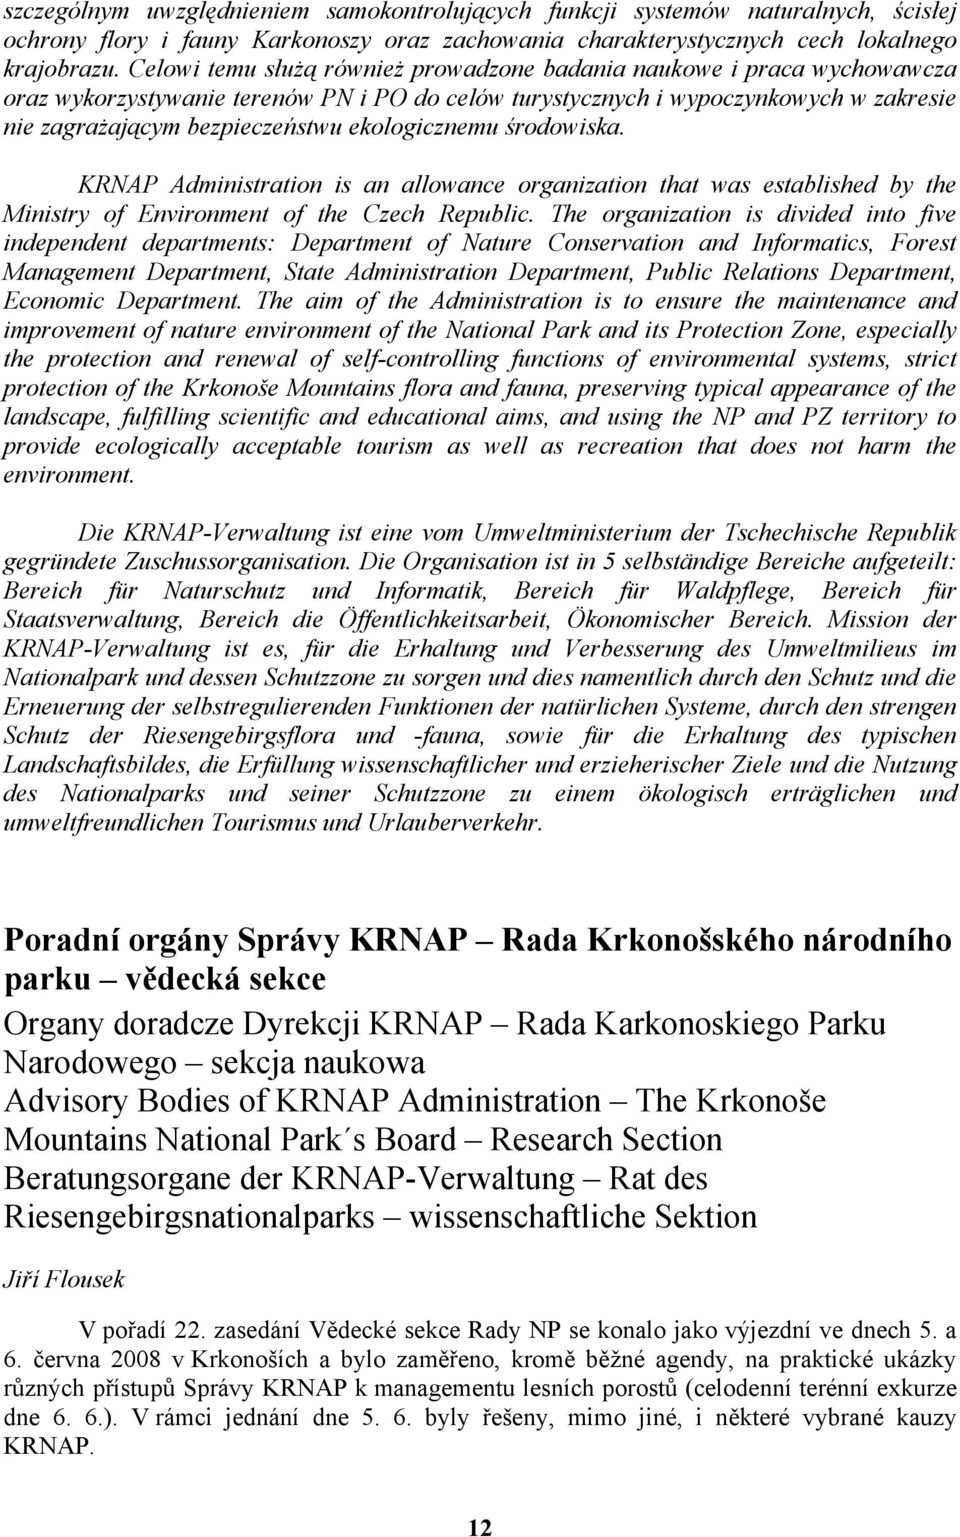 ekologicznemu środowiska. KRNAP Administration is an allowance organization that was established by the Ministry of Environment of the Czech Republic.